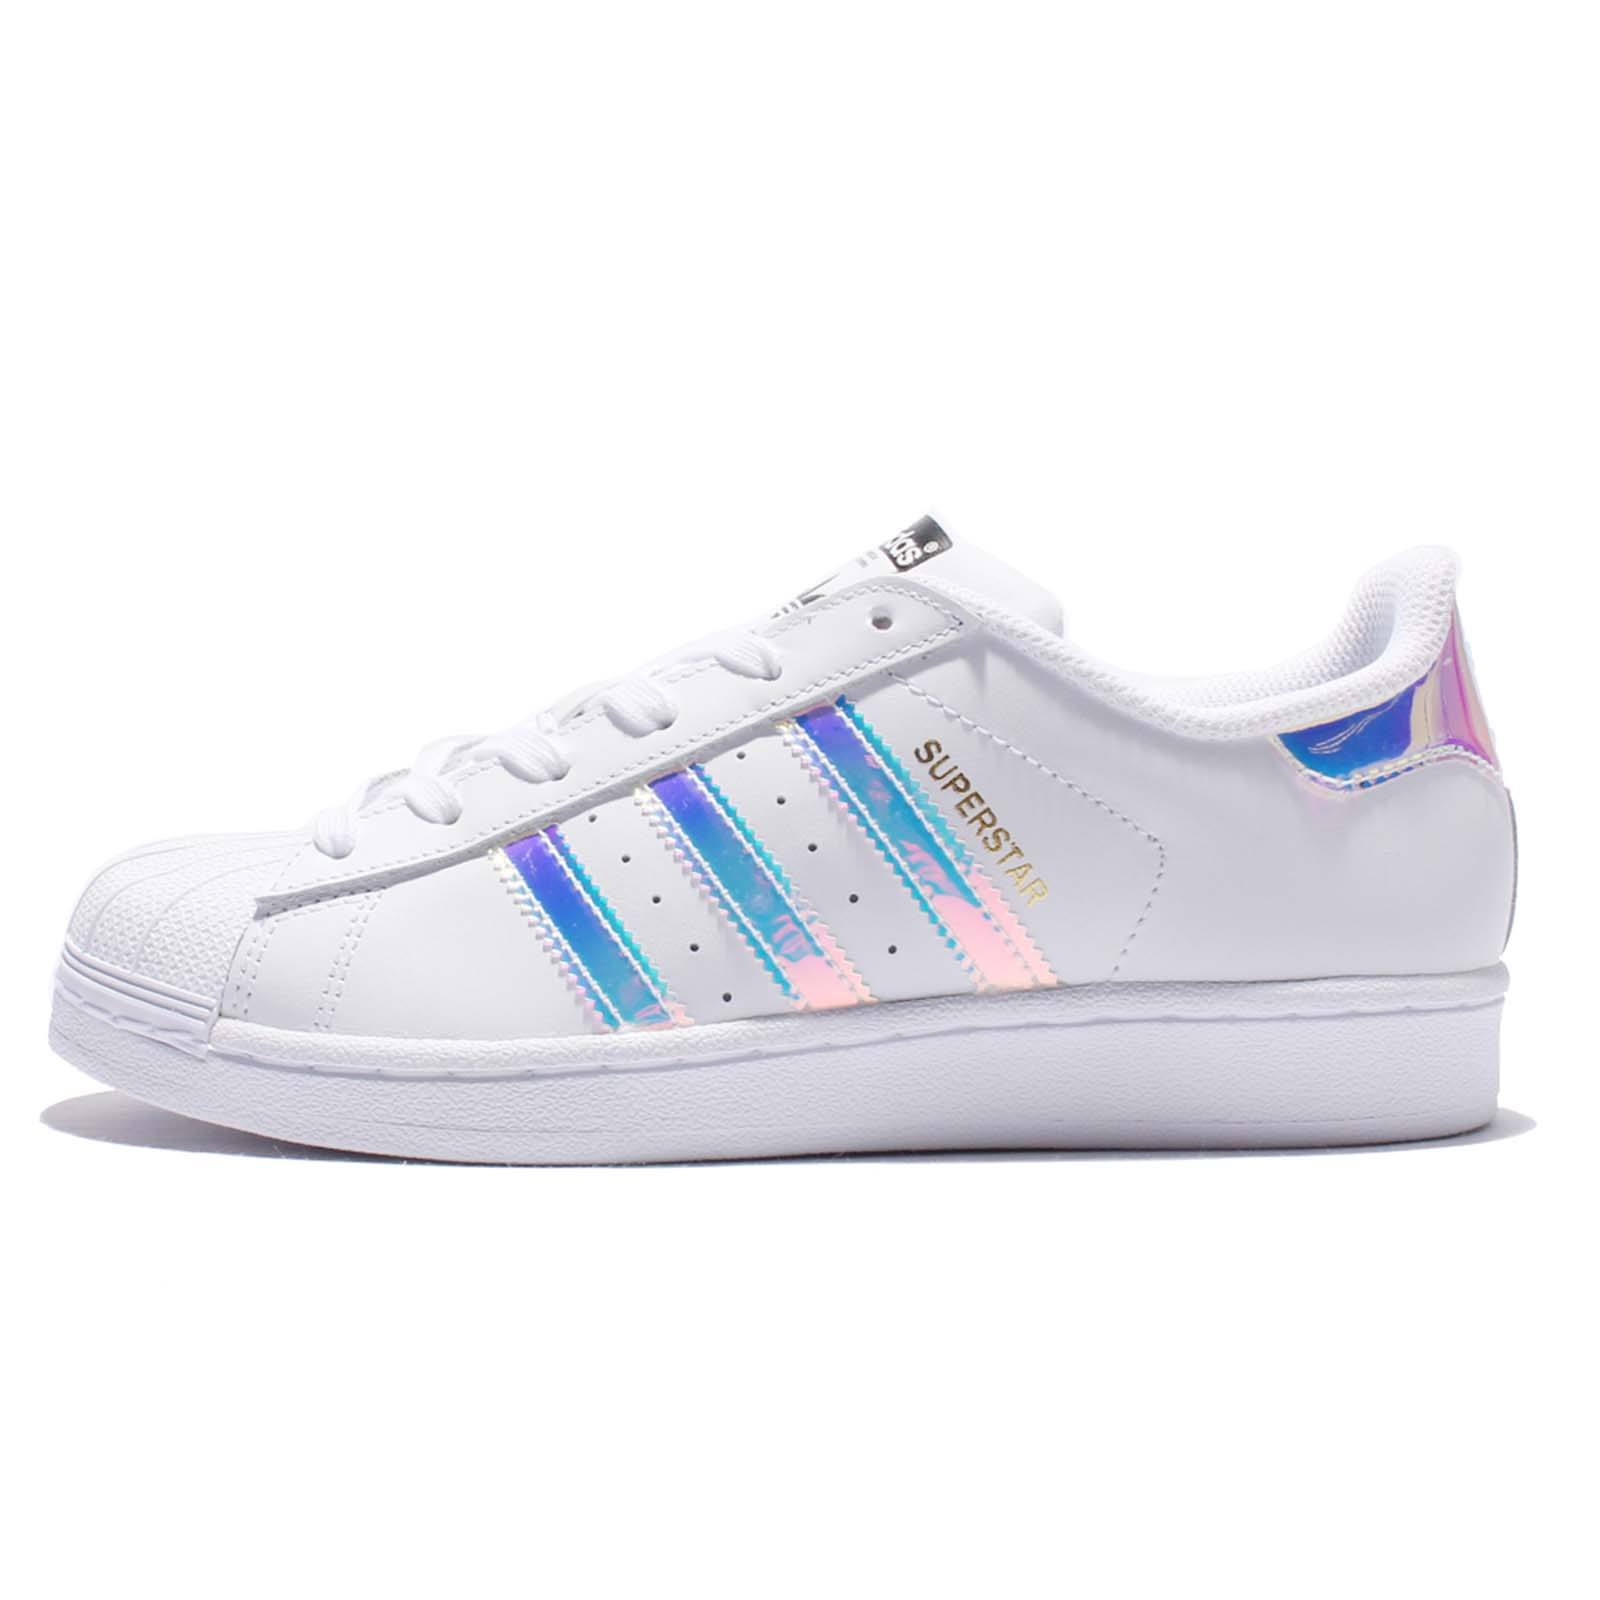 brand new 56761 e3bf4 adidas Originals Superstar J Iridescent Hologram Kid Junior Classic Shoes  AQ6278